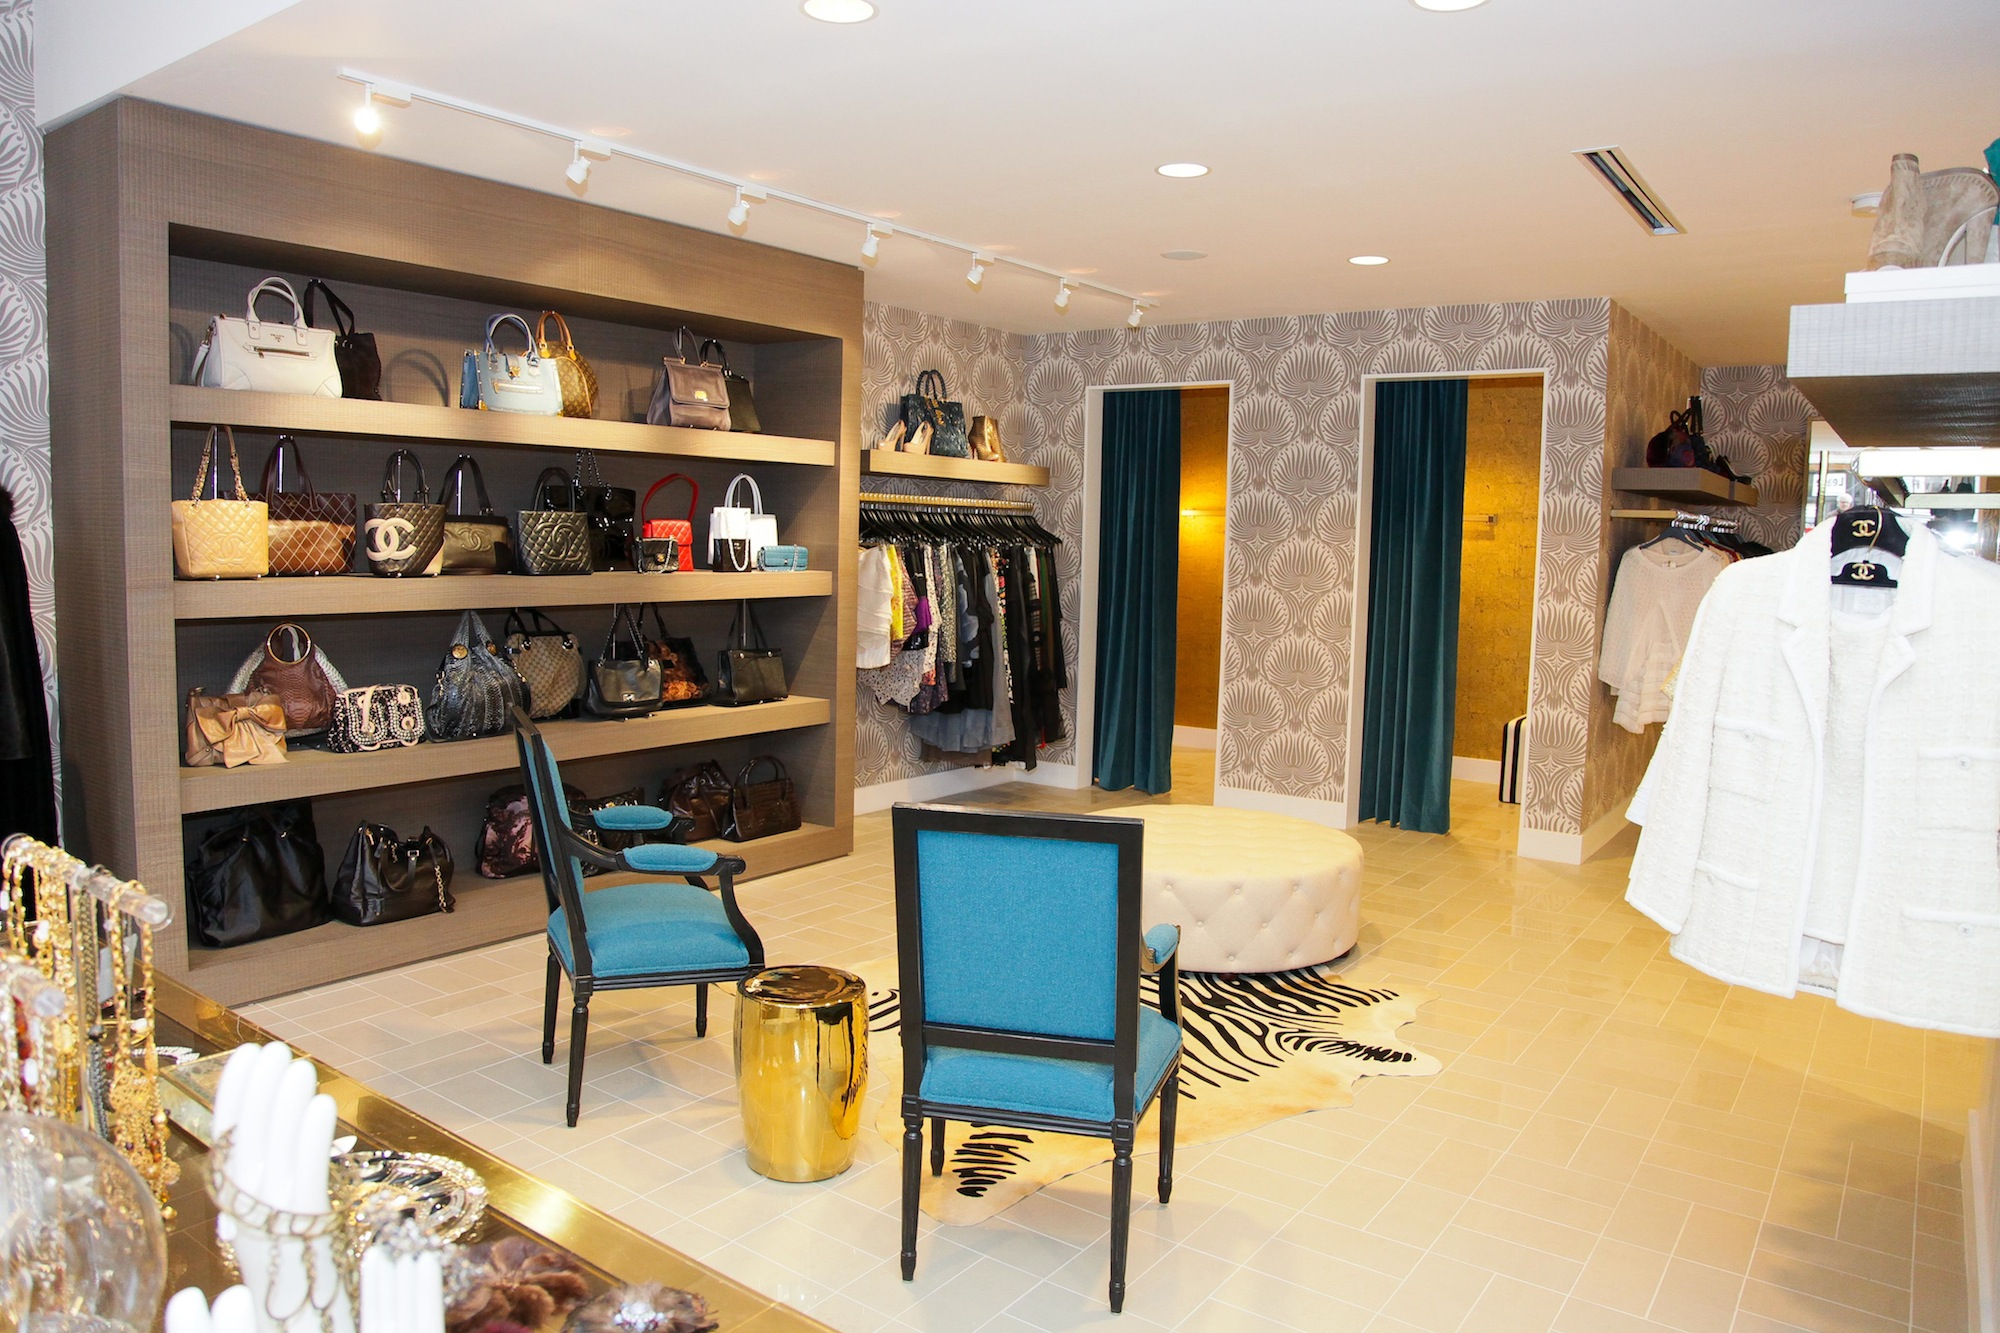 the first photos of luxury garage sale the brick mortar on the far wall are handbags in a built in wall fixture a seating area with a tufted white leather ottoman and a zebra rug dressing rooms are in the back